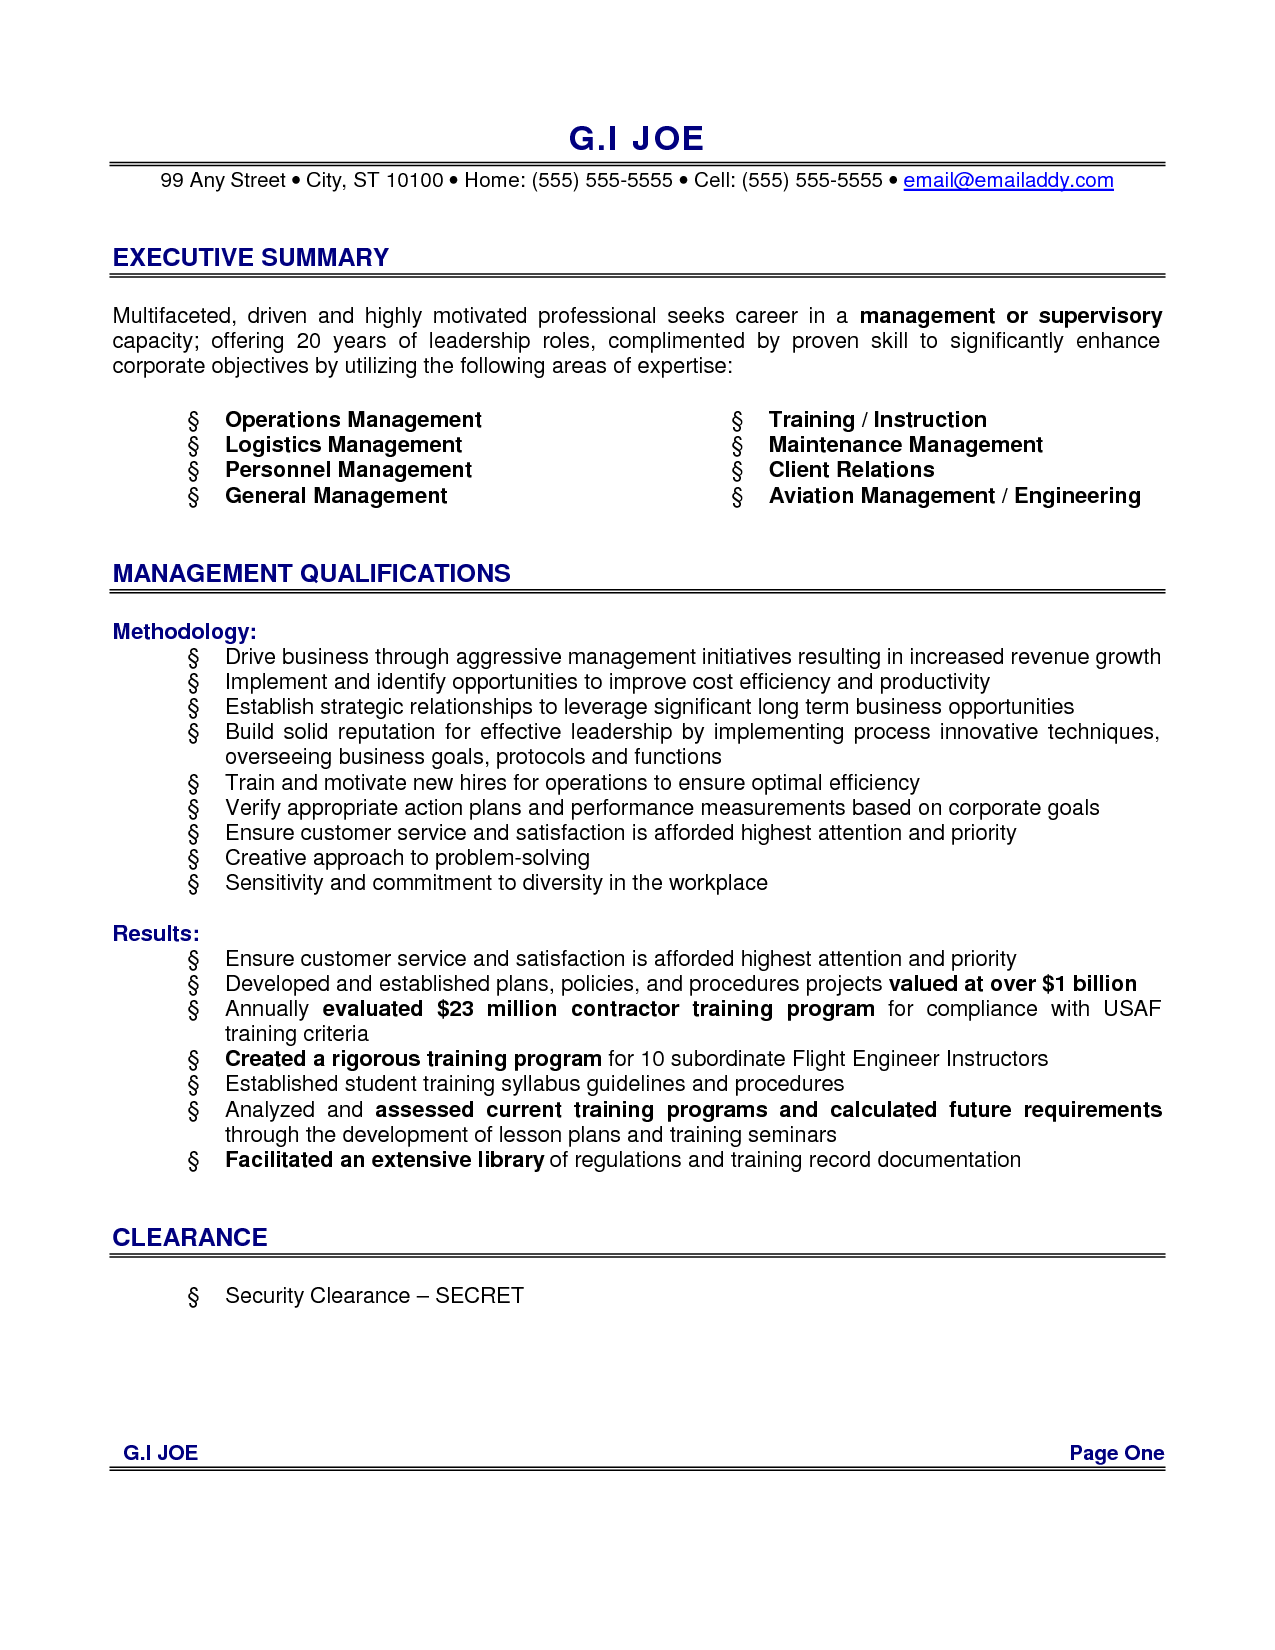 Perfect Resume Examples For Executive Summary With Management Qualifications , Executive  Resume Example As Writing Guidelines Pertaining To Executive Summary Resume